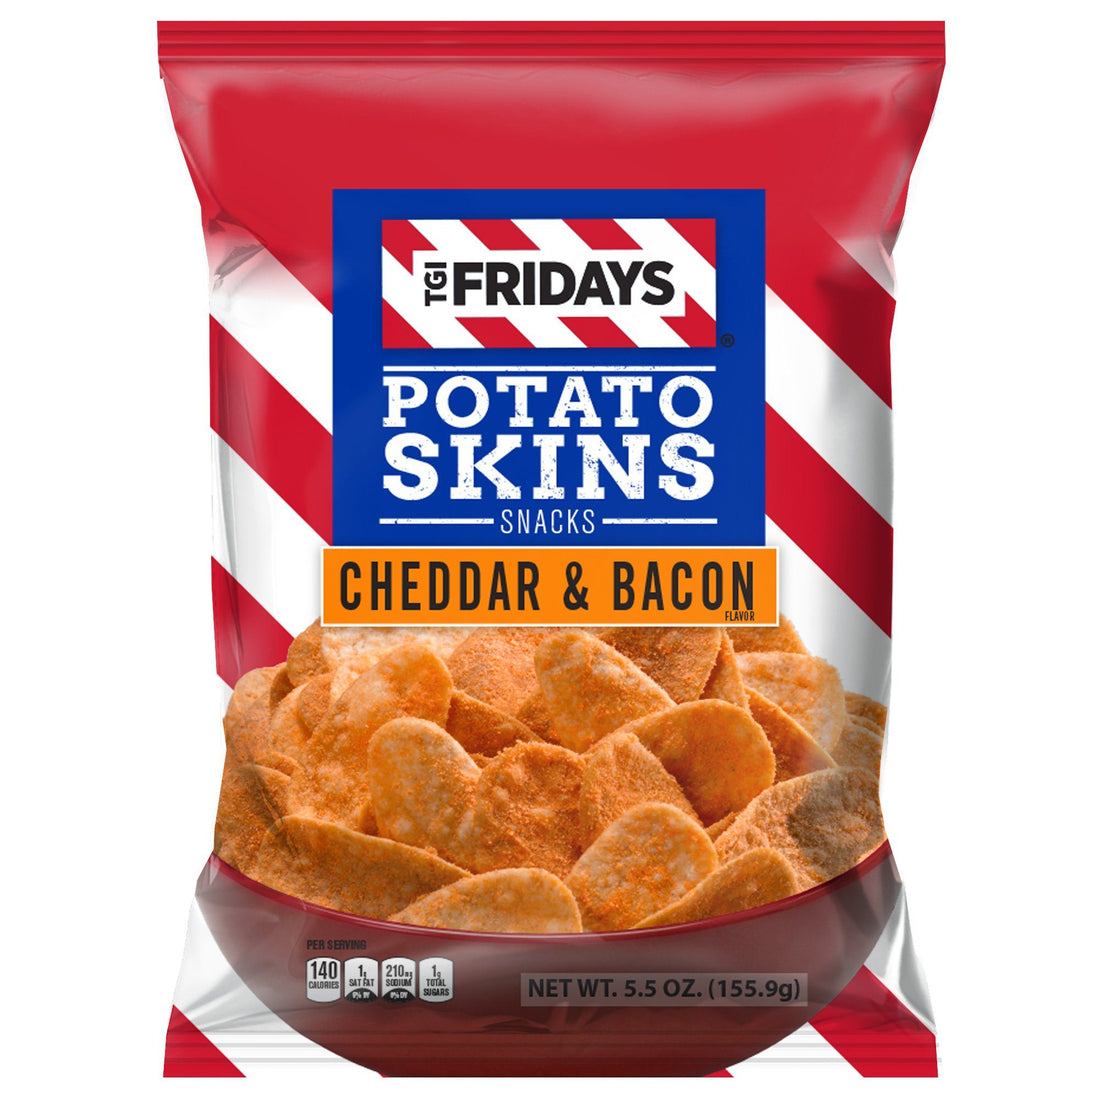 TGI Fridays Potato Skins, Cheddar & Bacon Potato Skins TGI Fridays 5.5 oz. - 16 count